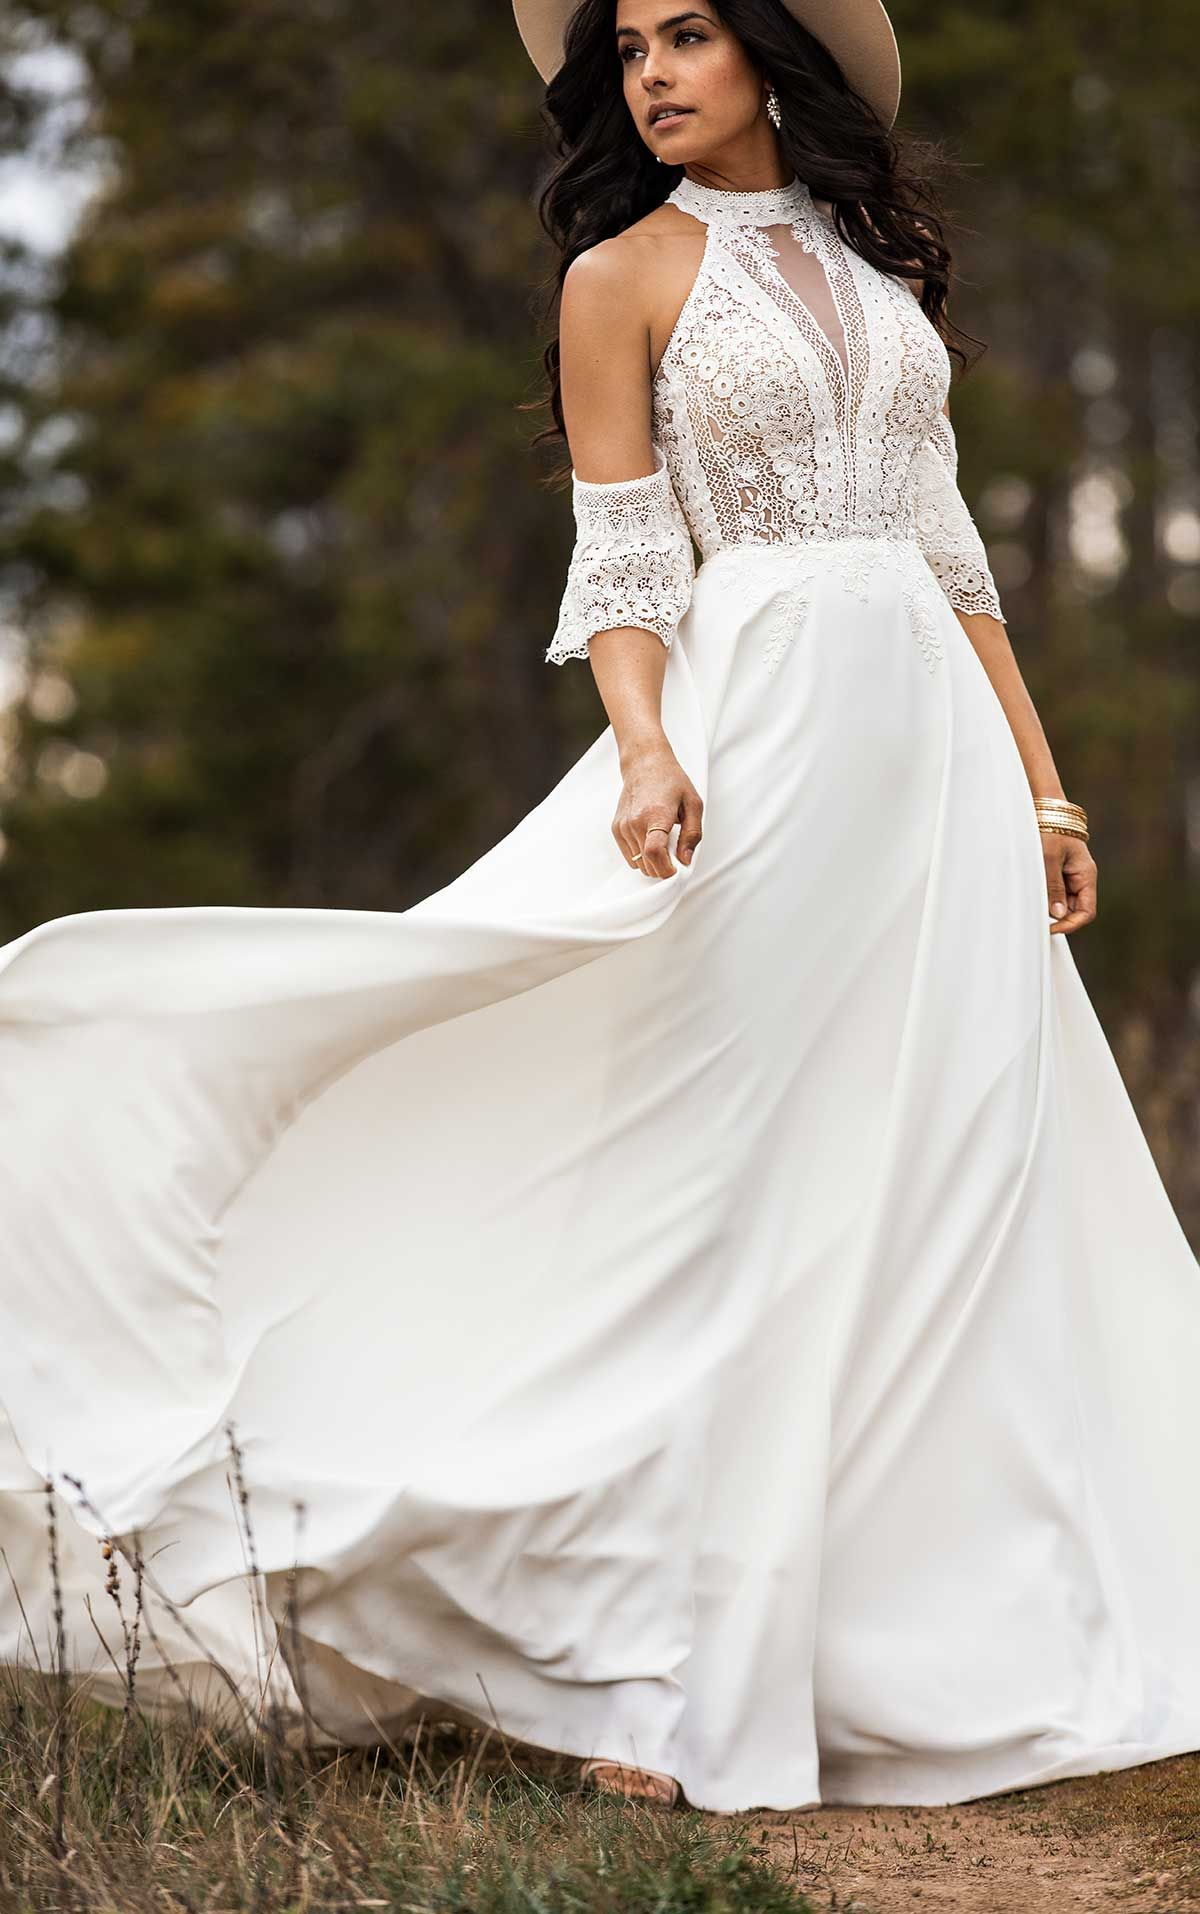 Simple Bohemian Wedding Dress With Removable Arm Cuffs All Who Wander Boho Wedding Dress Wedding Dresses Bohemian Style Dresses [ 1914 x 1200 Pixel ]